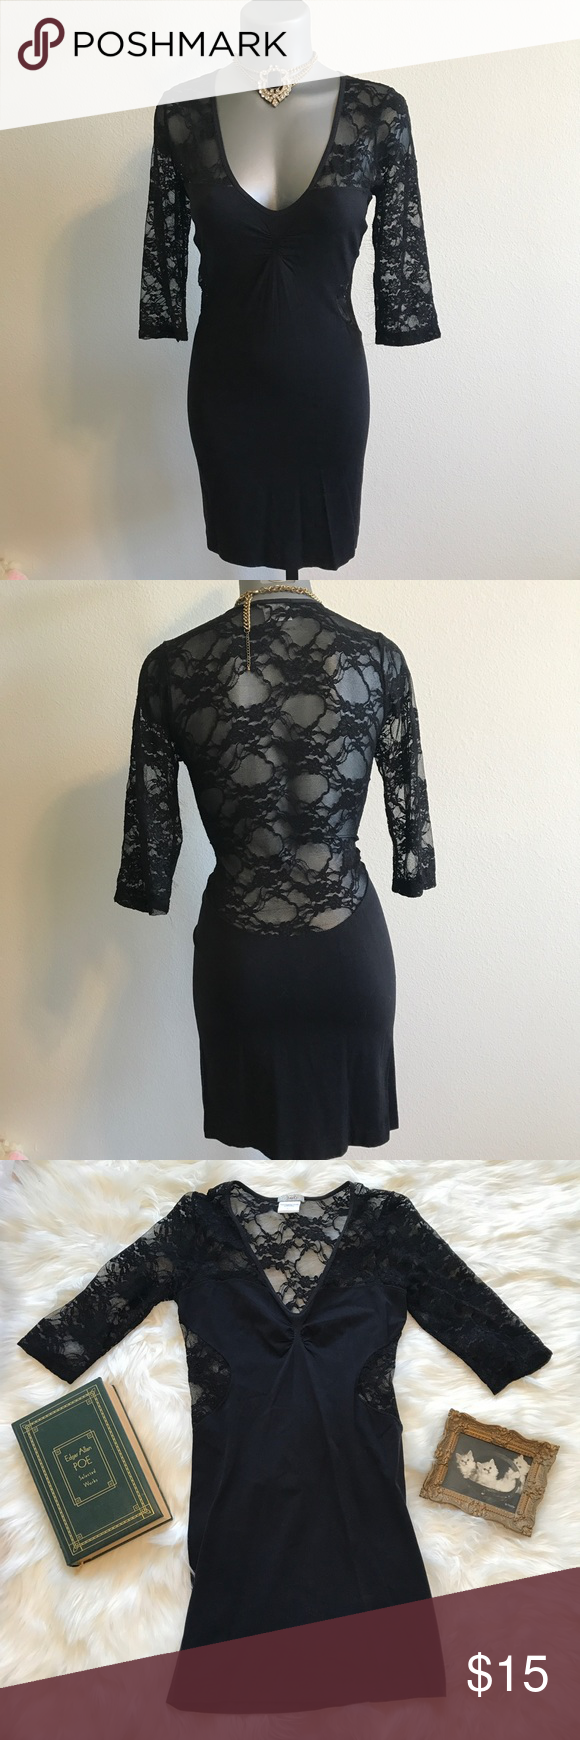 Black Sheer Lace Open Back Bodycon Dress M / L New without tags. Sheer black lace, open back, deep scoop neckline dress . Tagged M / L. Some excess elastic is sticking out on one of the sleeves, can easily be cut off. Selling as is! Otherwise A+ condition. #black #sheer #lace #mini #stretchy #stretch #dress #betsey #f21 #forever #21 #johnson #goth #gothic #grunge #90s #1990s #courtney #love #witchy #witch #glam #jawbreaker #rose #mcgowan #charmed #fashion #nova #bodycon #bandage #cut #out #open #back #backless #rocker #rocknroll #gypsy #boho Dresses Mini